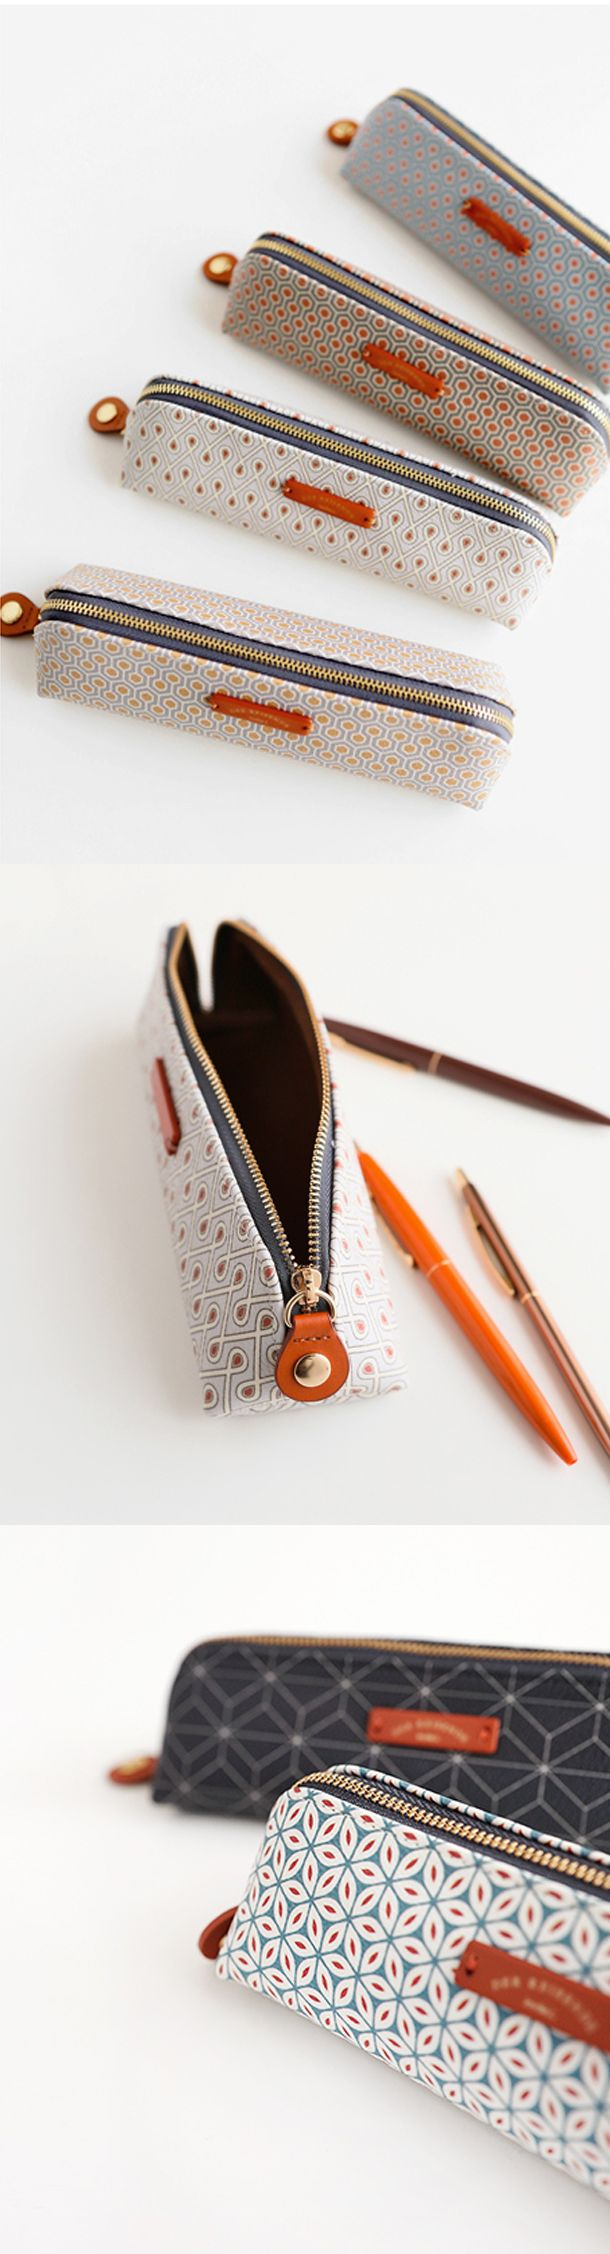 So many beautiful things in this world, and this Retro Pattern Pen Case is one of them!